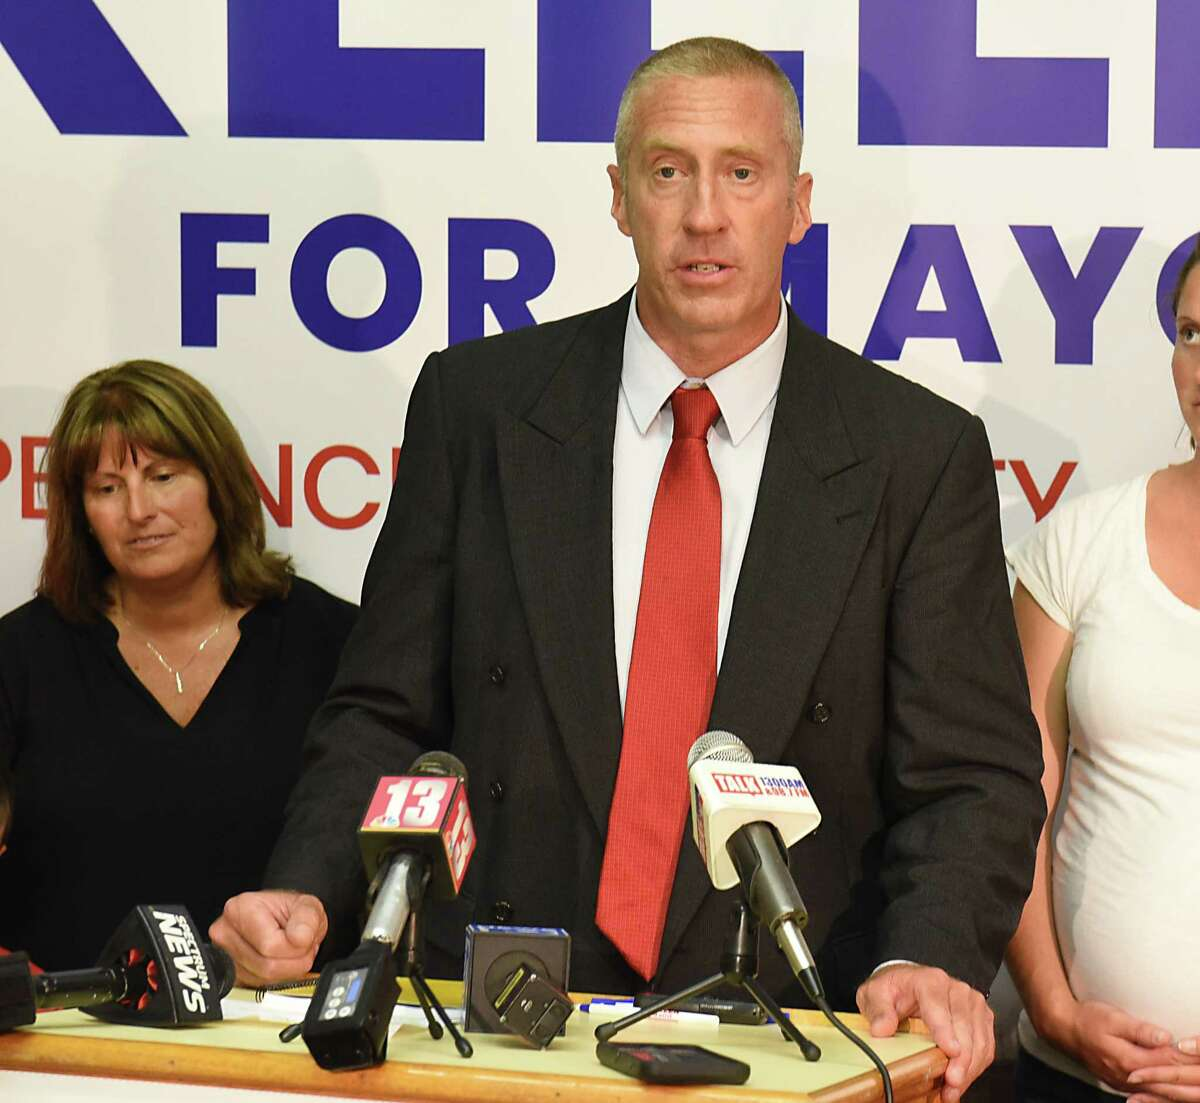 Bill Keeler give a victory speech in the primary race for Cohoes Mayor on Tuesday June 25, 2019 in Cohoes, N.Y. Keeler's wife Nancy listens on the left. (Lori Van Buren/Times Union)